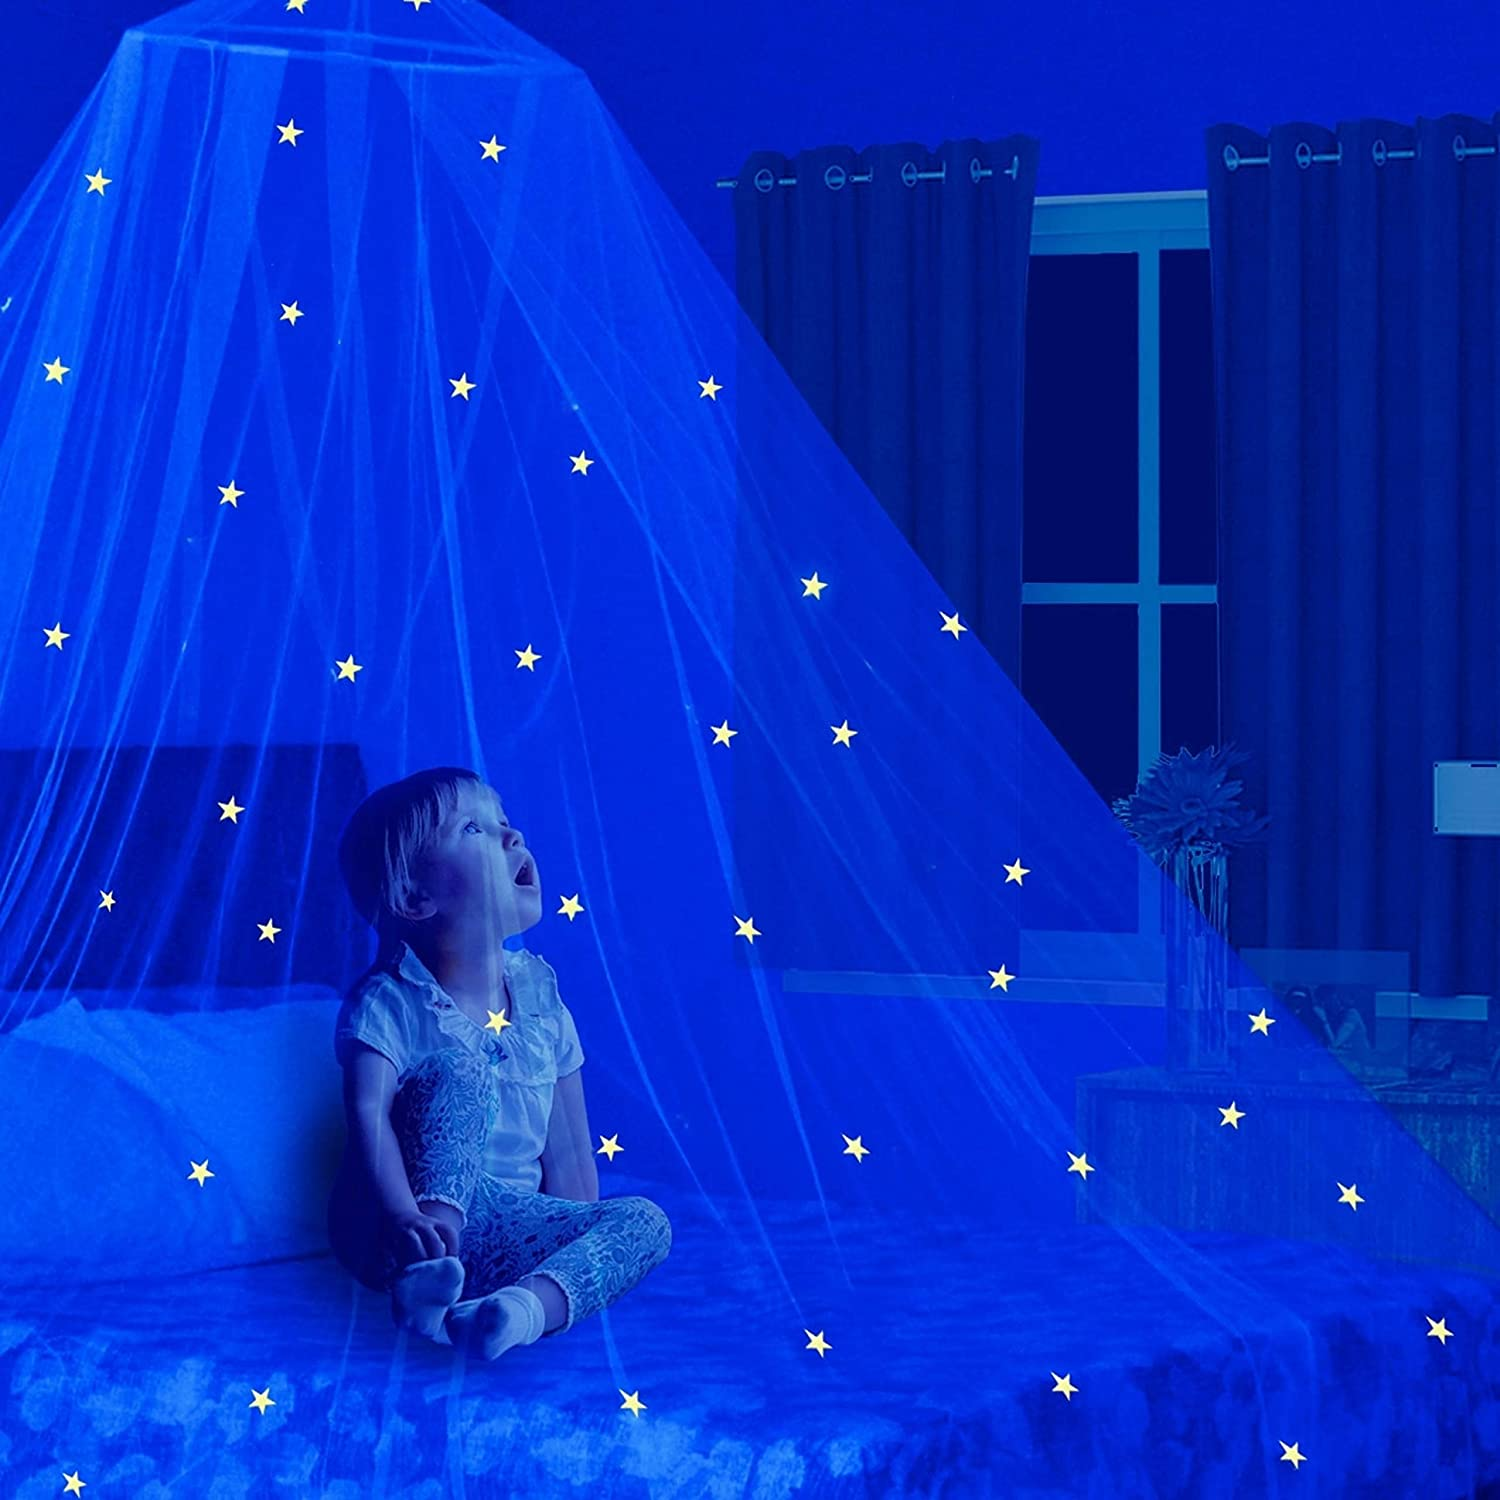 Stars Glow in the Dark Kids Bed Canopy Baby Crib Play Tent Fairy Light Stars Large Mosquito Net